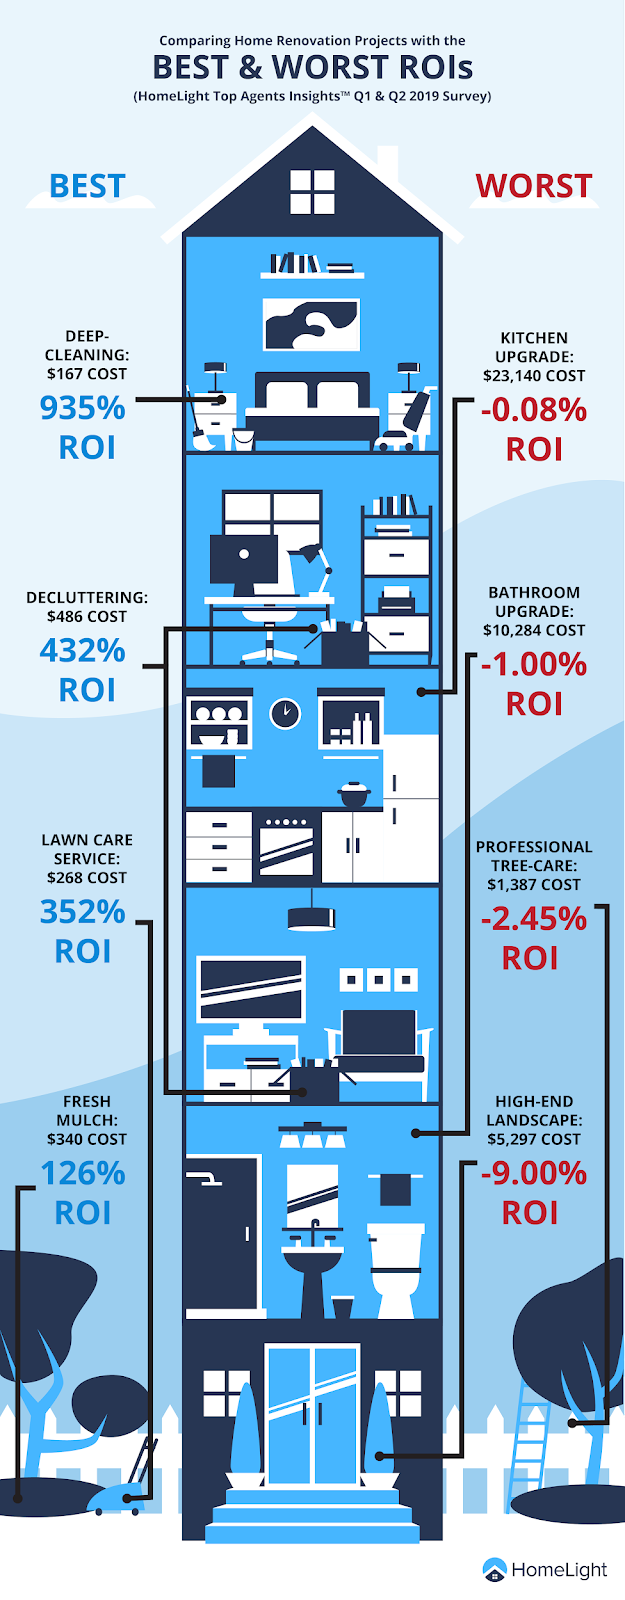 Home Renovation Projects with the Best and Worst Return on